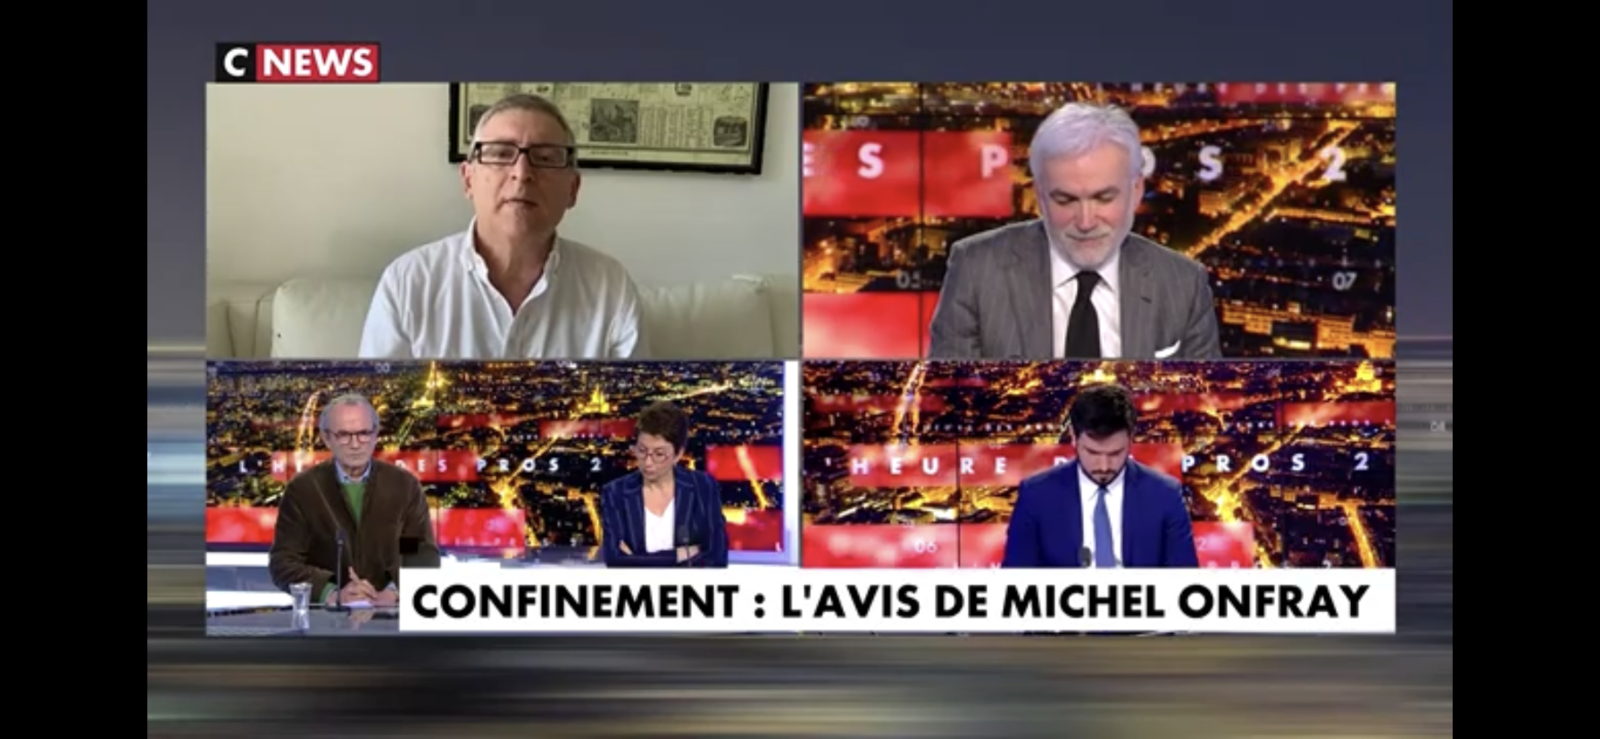 Michel Onfray - Heure des Pros 2 (CNews) - 23.03.2020